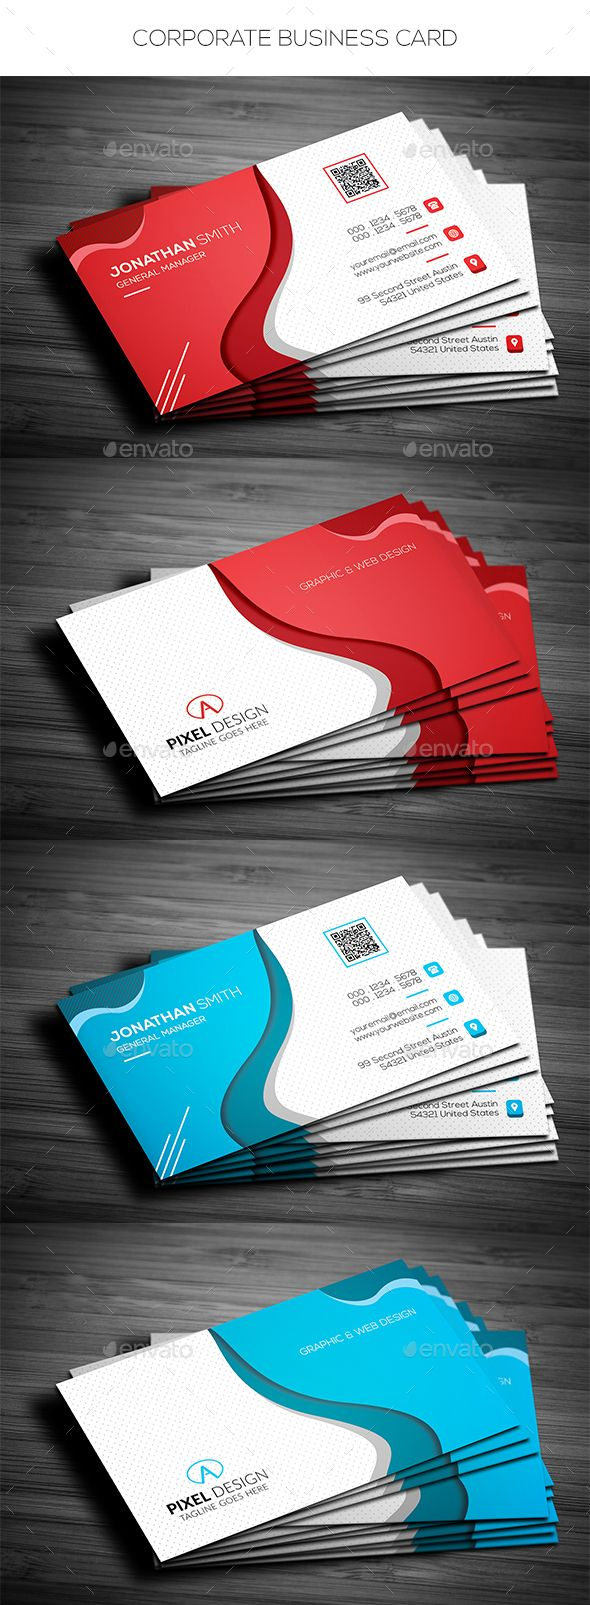 Corporate business card cartes de visita visita e carto corporate business card corporate business cards download here httpsgraphicriver reheart Choice Image